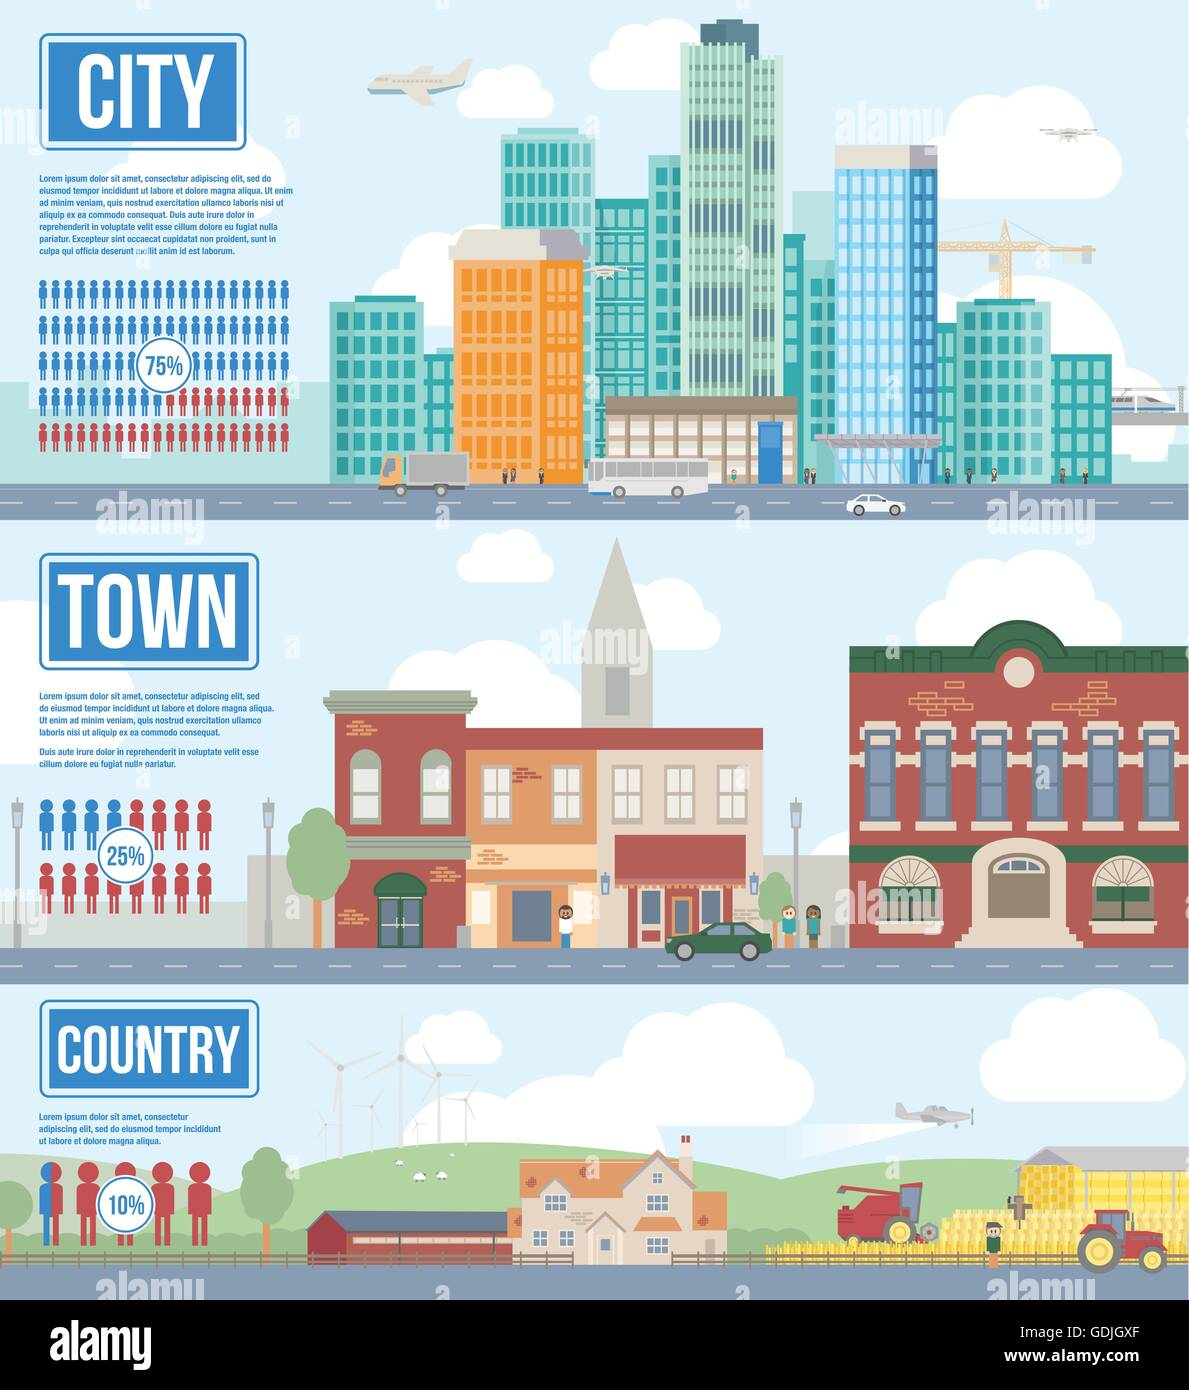 Illustration Showing Difference Between Urban And Rural